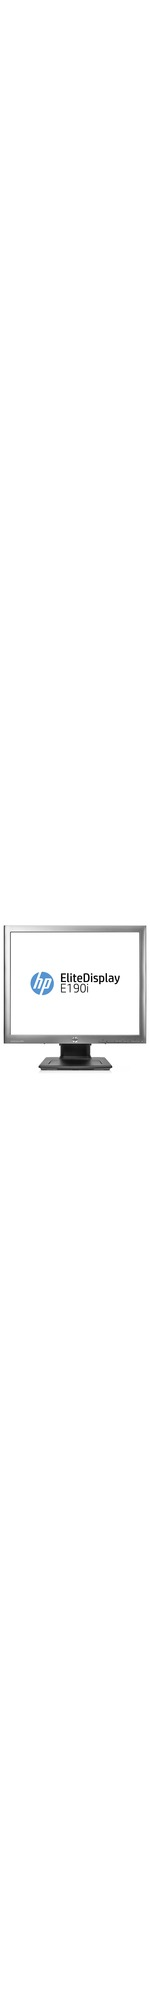 HP Business E190i 48 cm 18.9And#34; LED LCD Monitor - 5:4 - 14 ms